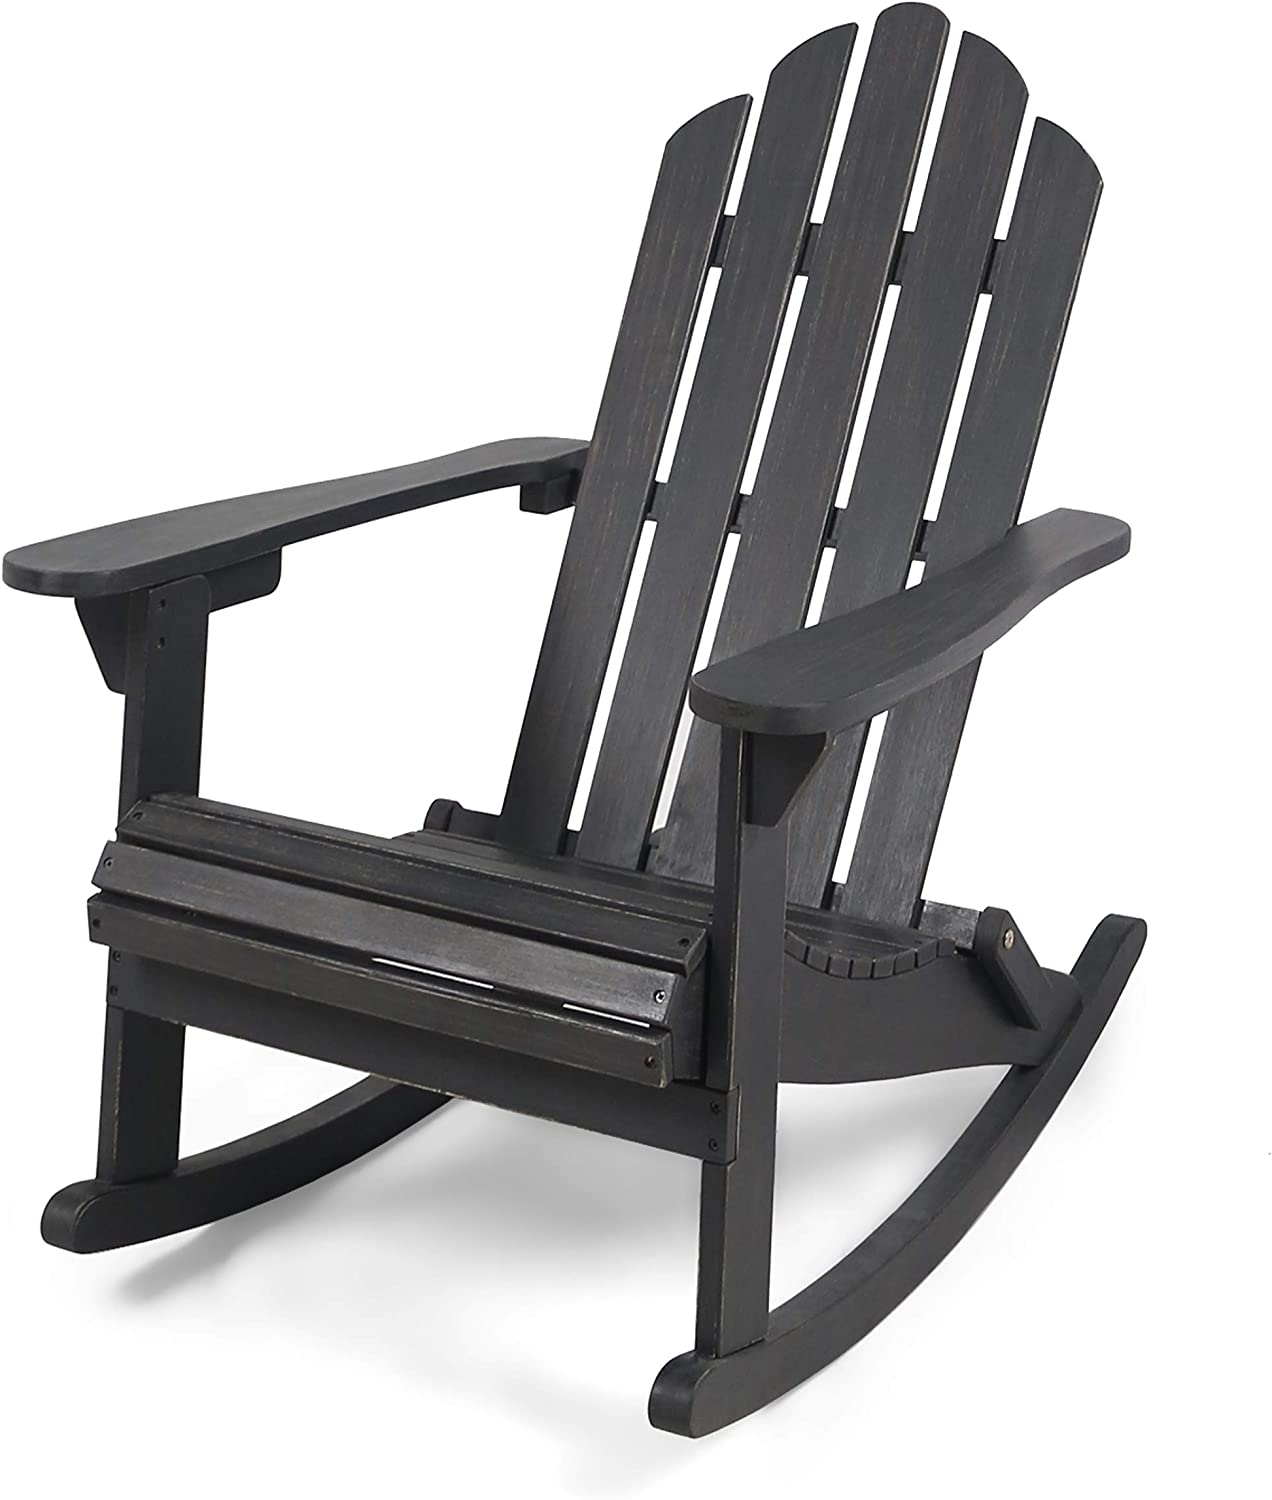 Christopher Knight Home 305379 Cara Outdoor Adirondack Acacia Wood Rocking Chair, Dark Gray Finish